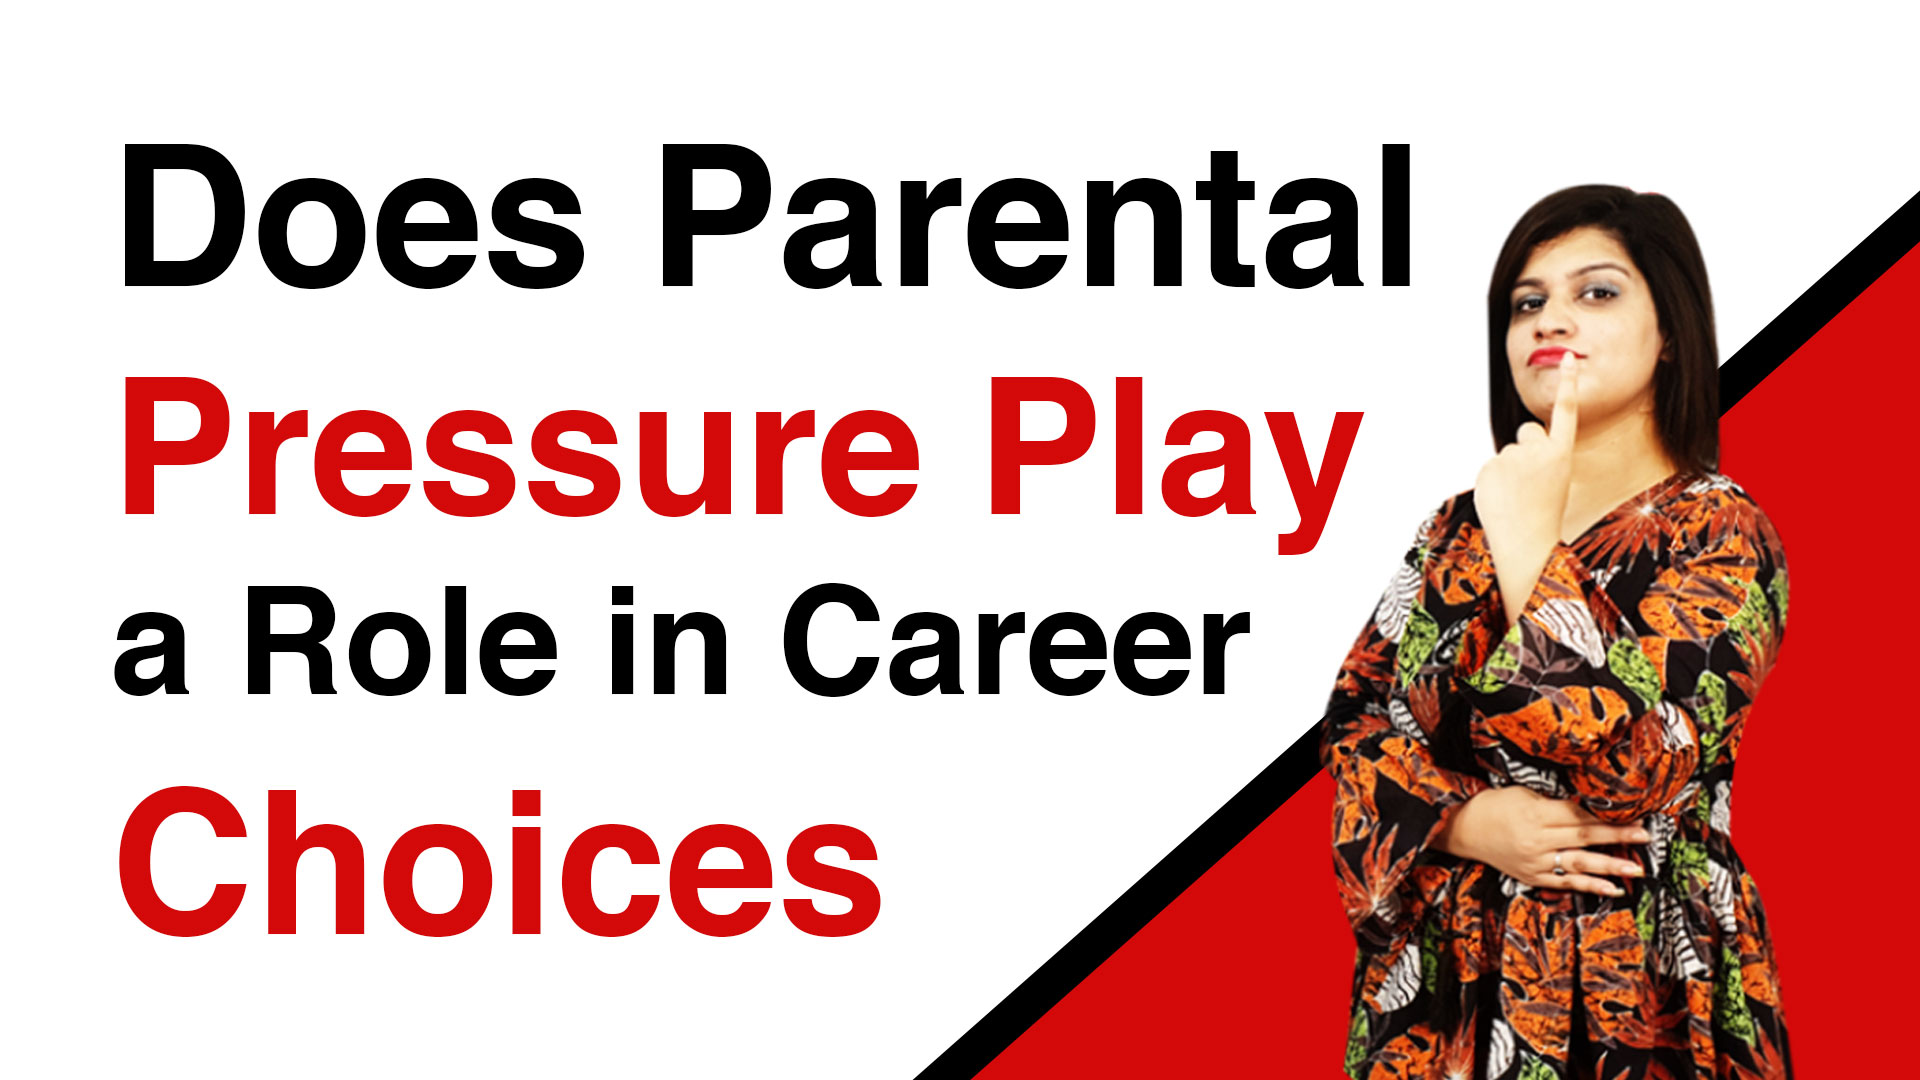 Does Parental Pressure Play a Role in Career Choices